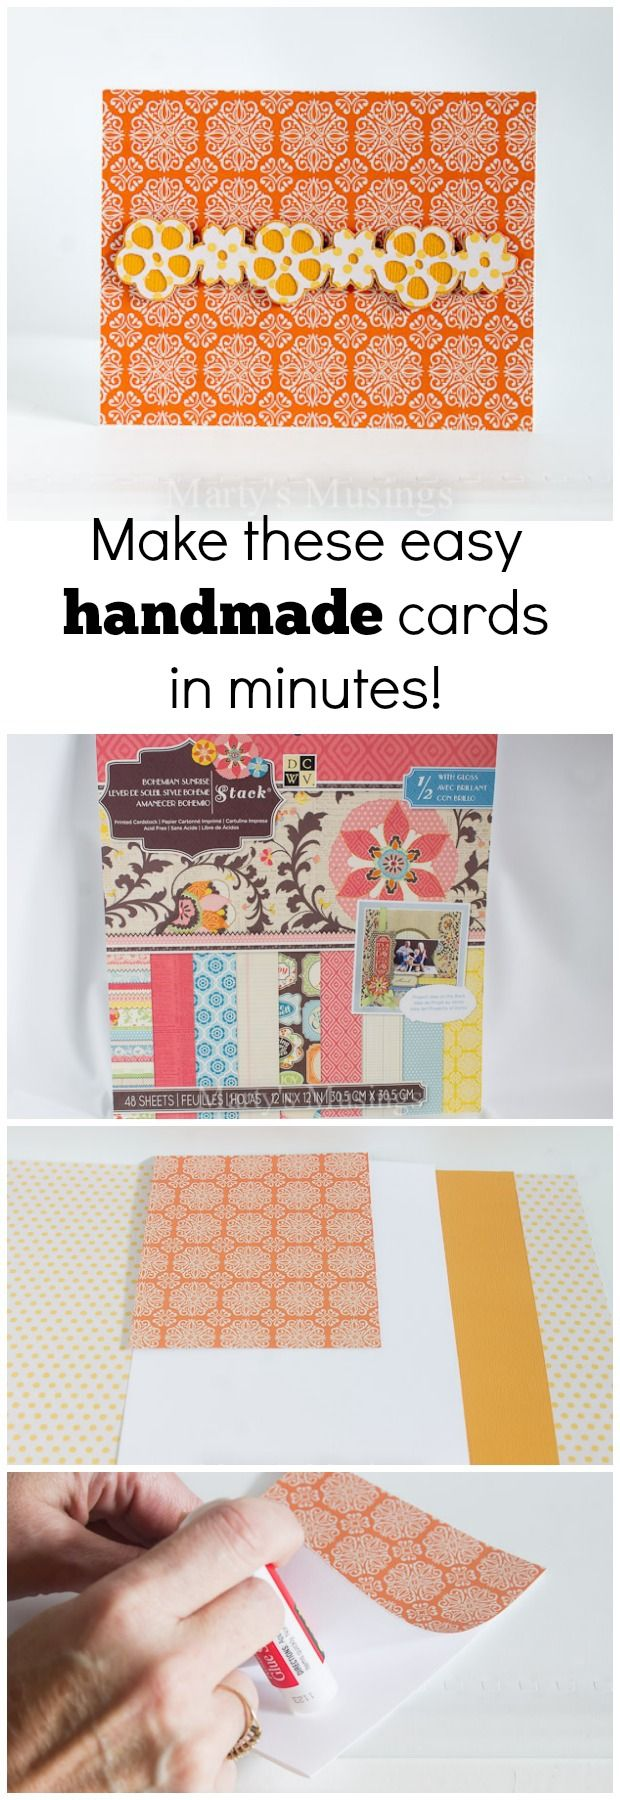 Scrapbook ideas without photos - 15 Best Ideas About Easy Handmade Cards On Pinterest Handmade Cards Handmade Birthday Cards And Simple Handmade Cards